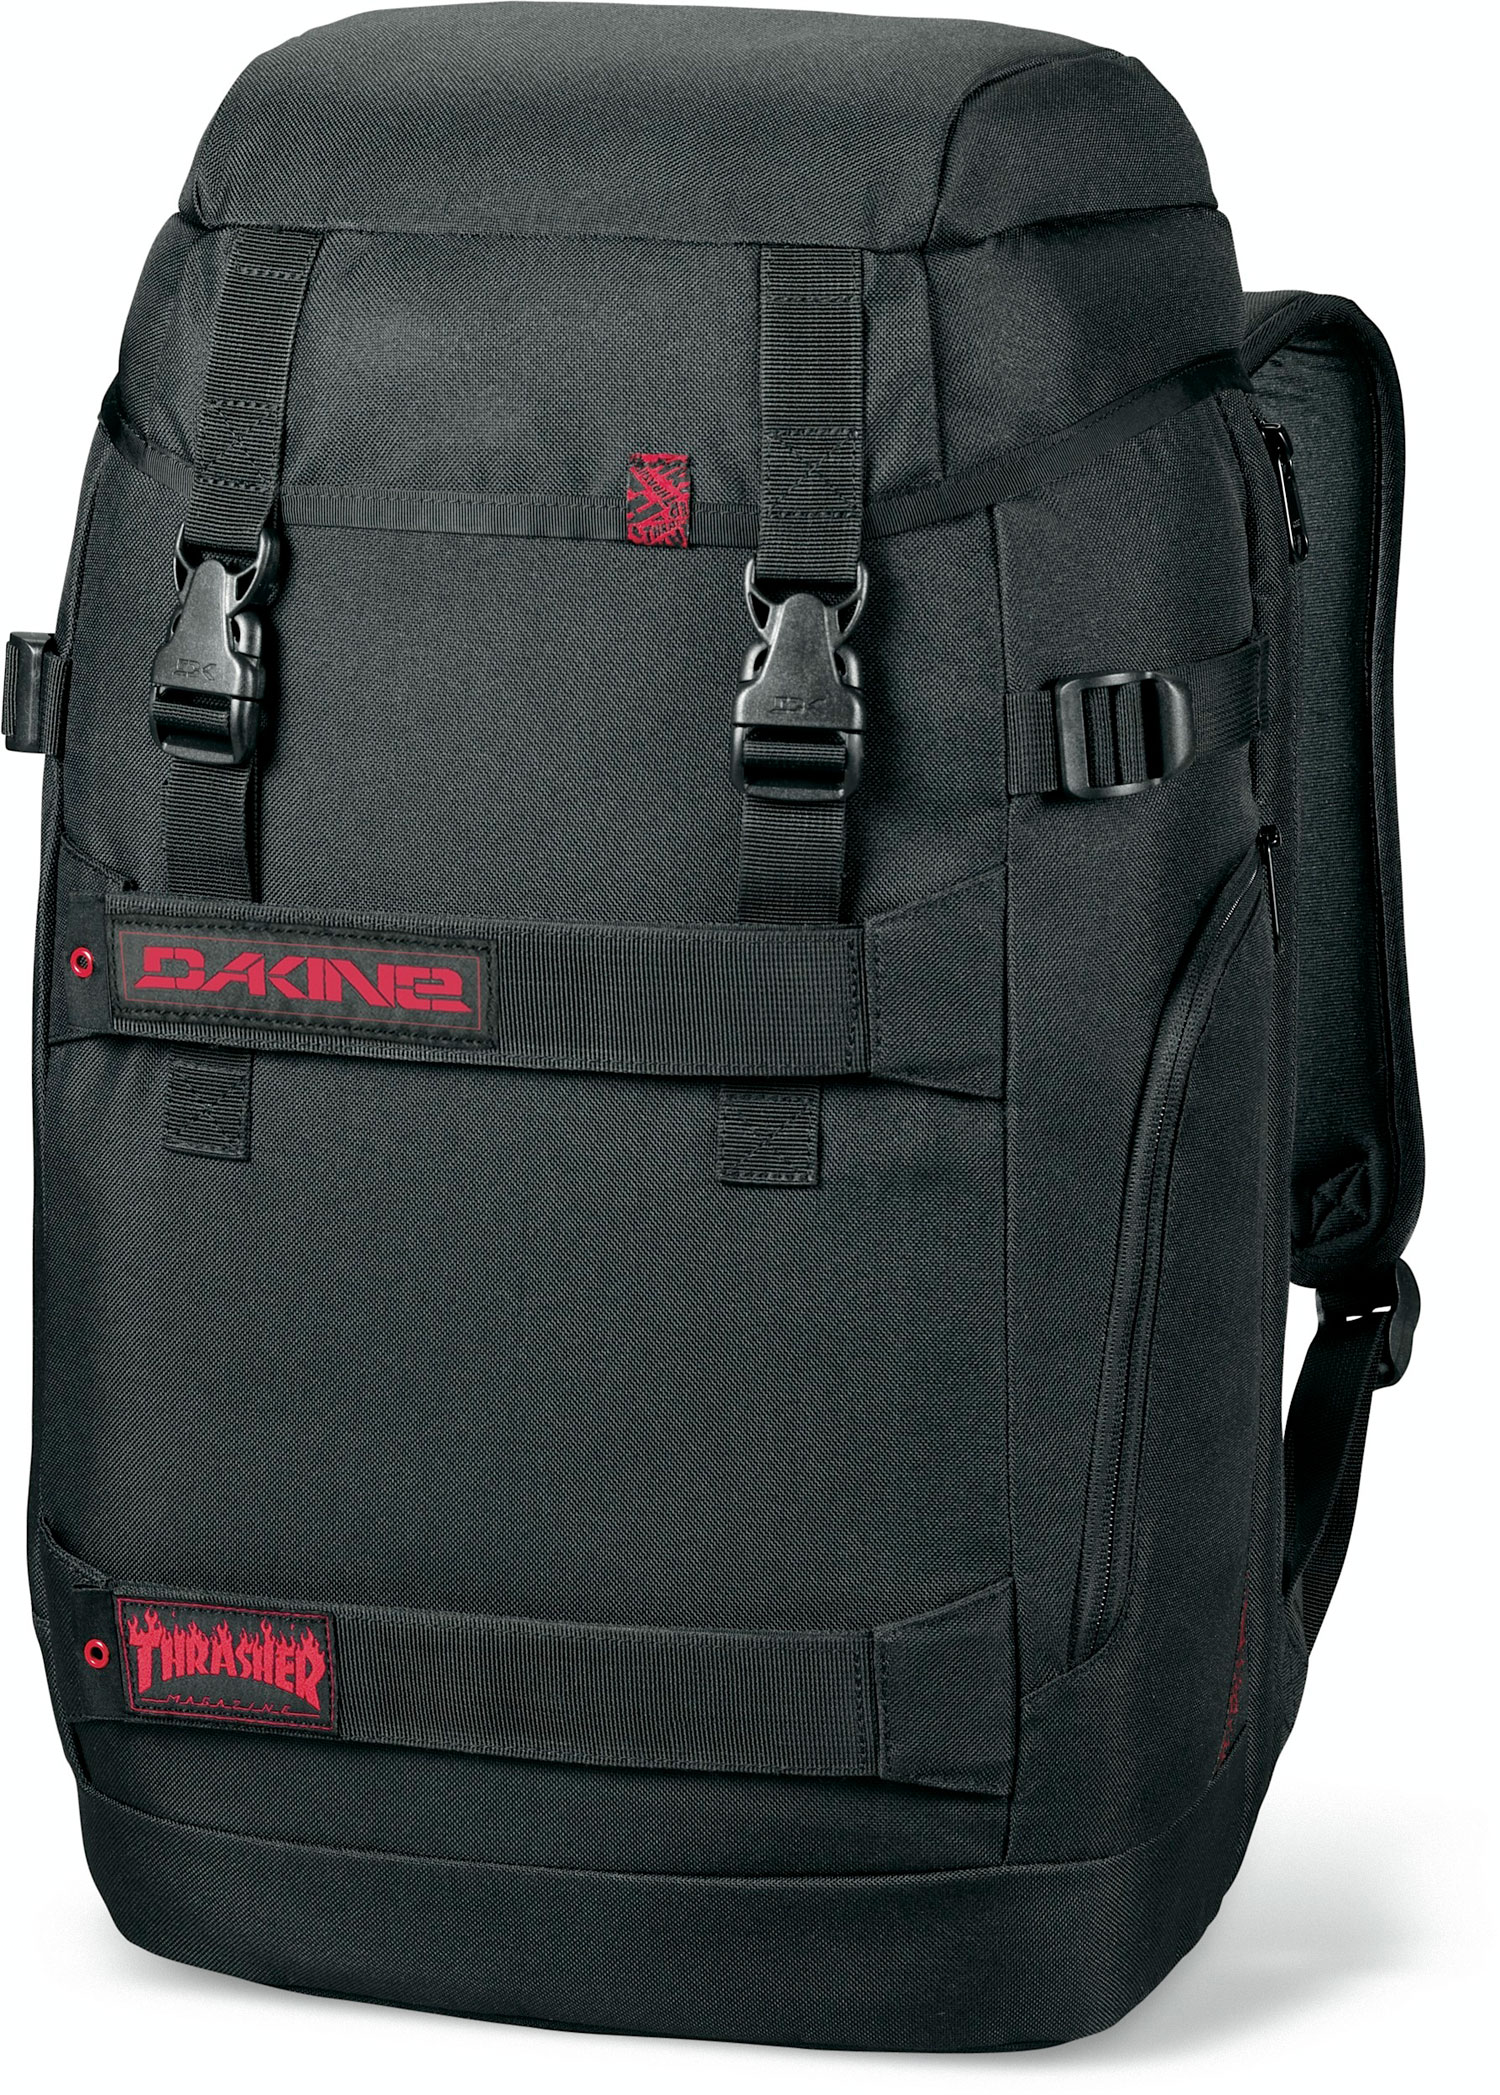 "Surf Key Features of the Dakine Burnside 28L Backpack: 1725 cu. in. [ 28L ] 19.5 x 11.5 x 9.5"" [ 49 x 29 x 24cm ] 600D Polyester Fleece lined, padded sleeve fits most 15"" laptops Side access to laptop sleeve Skate carry straps zippered side pockets Padded bottom panel - $55.00"